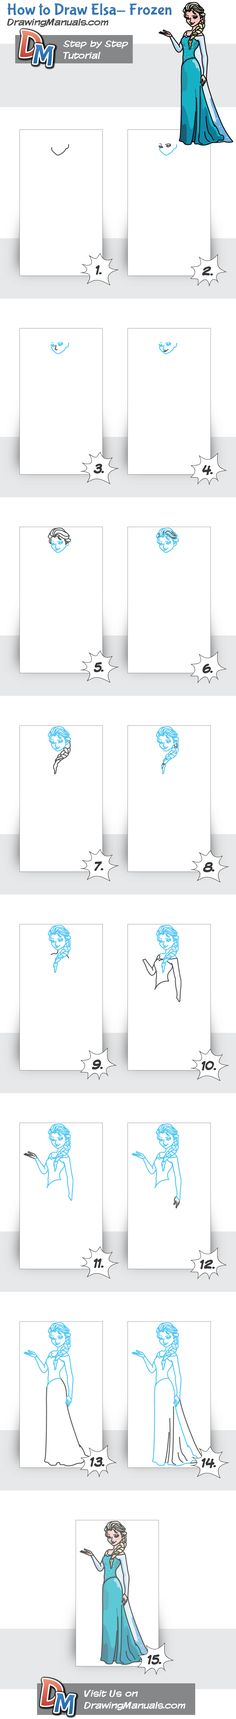 How+to+Draw+Elsa+from+Frozen